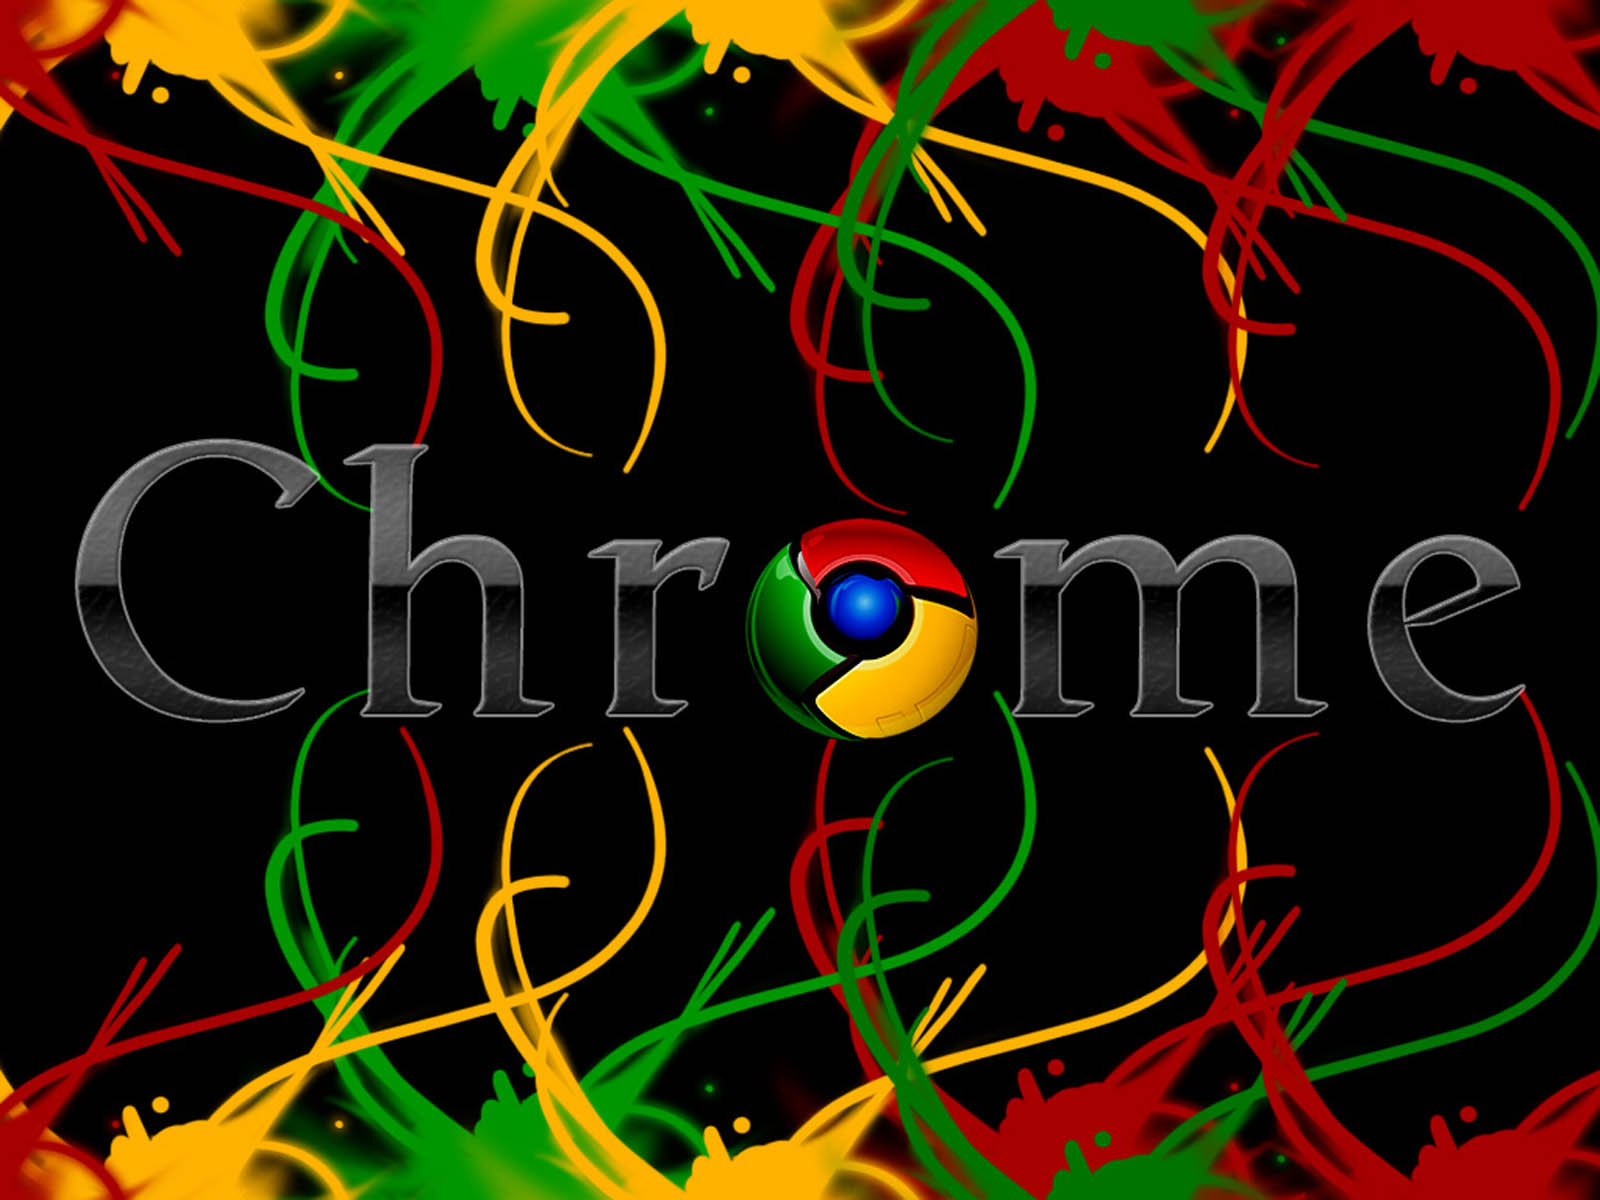 Google chrome themes gallery 2012 - Chrome Wallpapers Images Photos Pictures And Backgrounds For Free